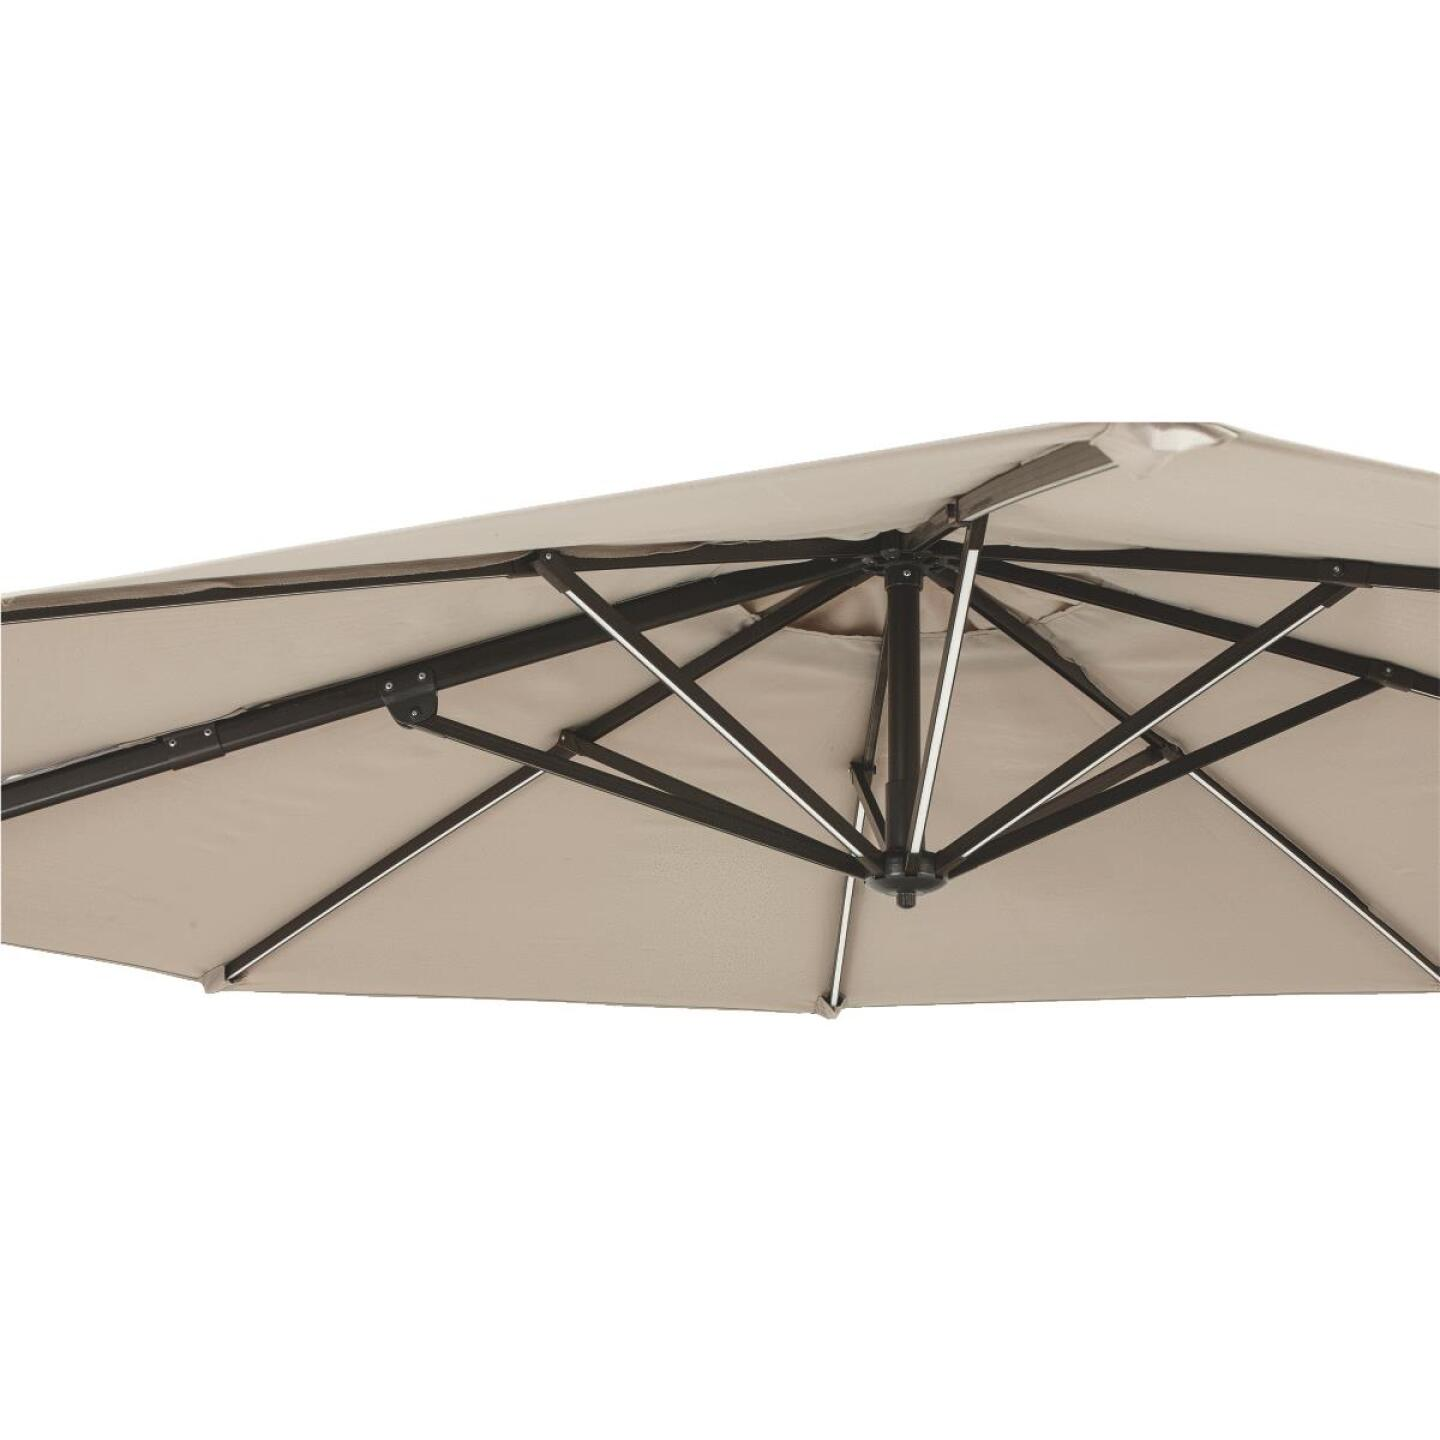 Outdoor Expressions 10 Ft. Offset Cream Patio Umbrella with Solar LED Light Image 2